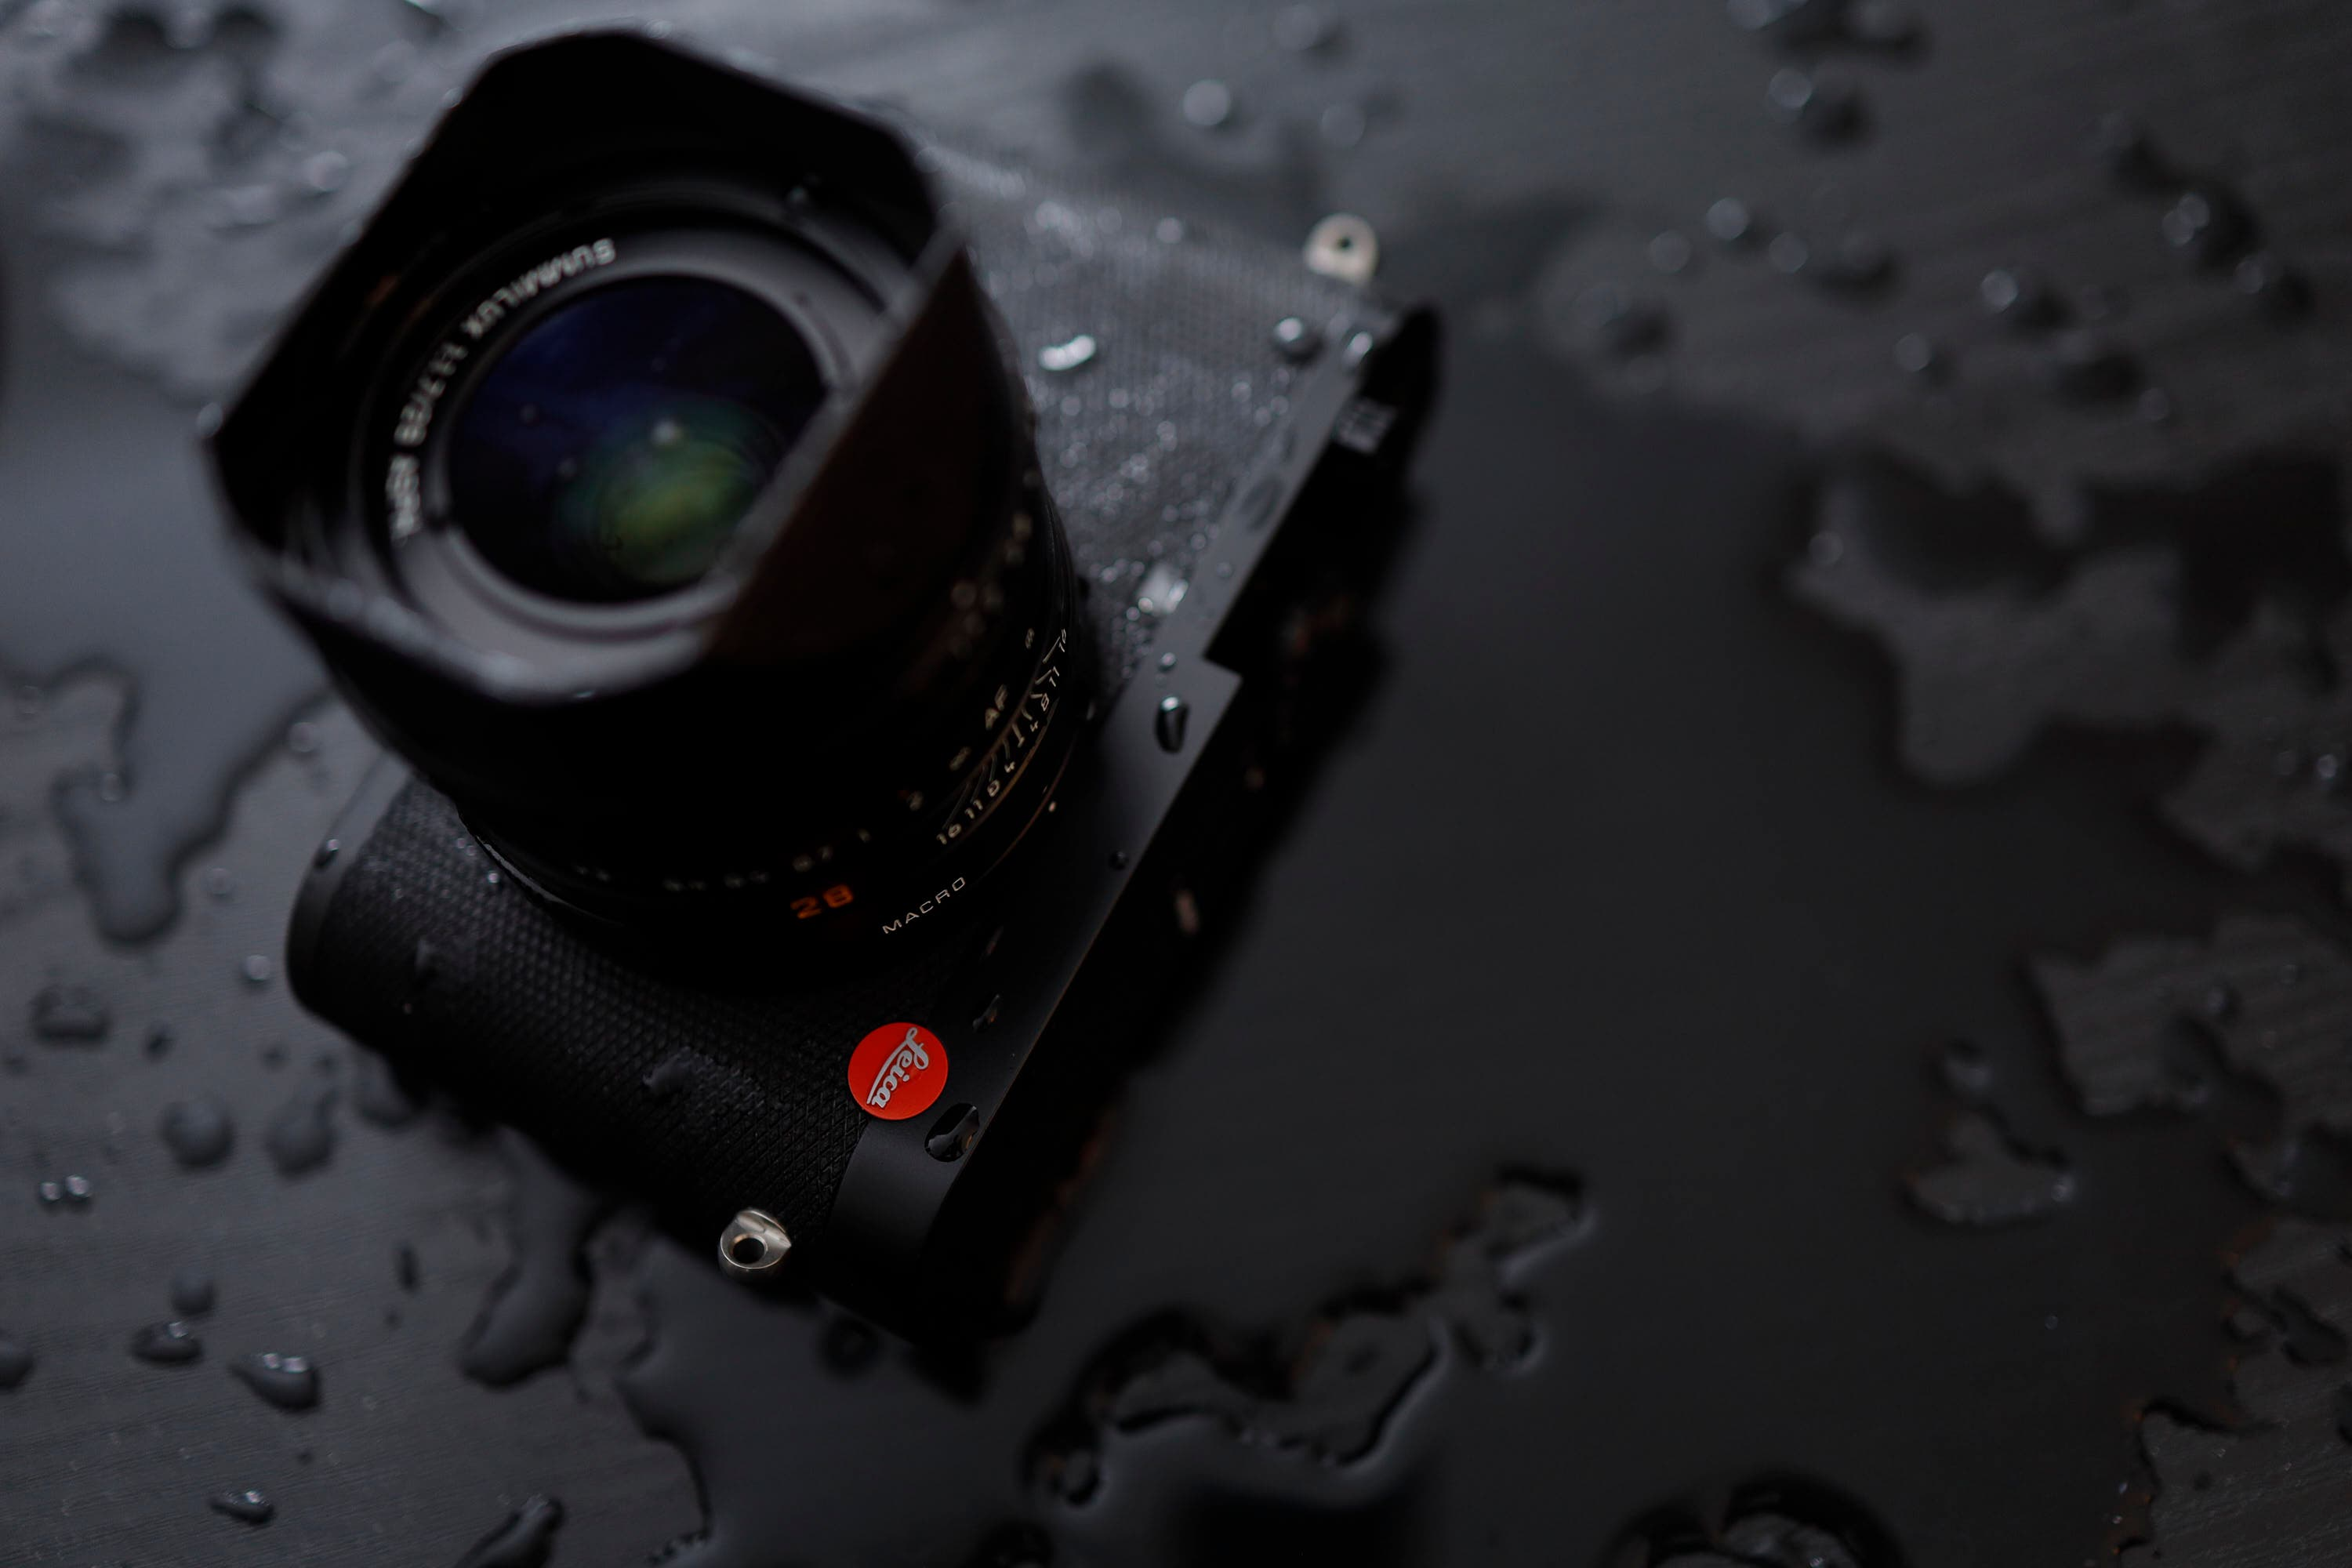 The Leica Q2 is a Pretty Good Deal; You're Thinking About it Wrong